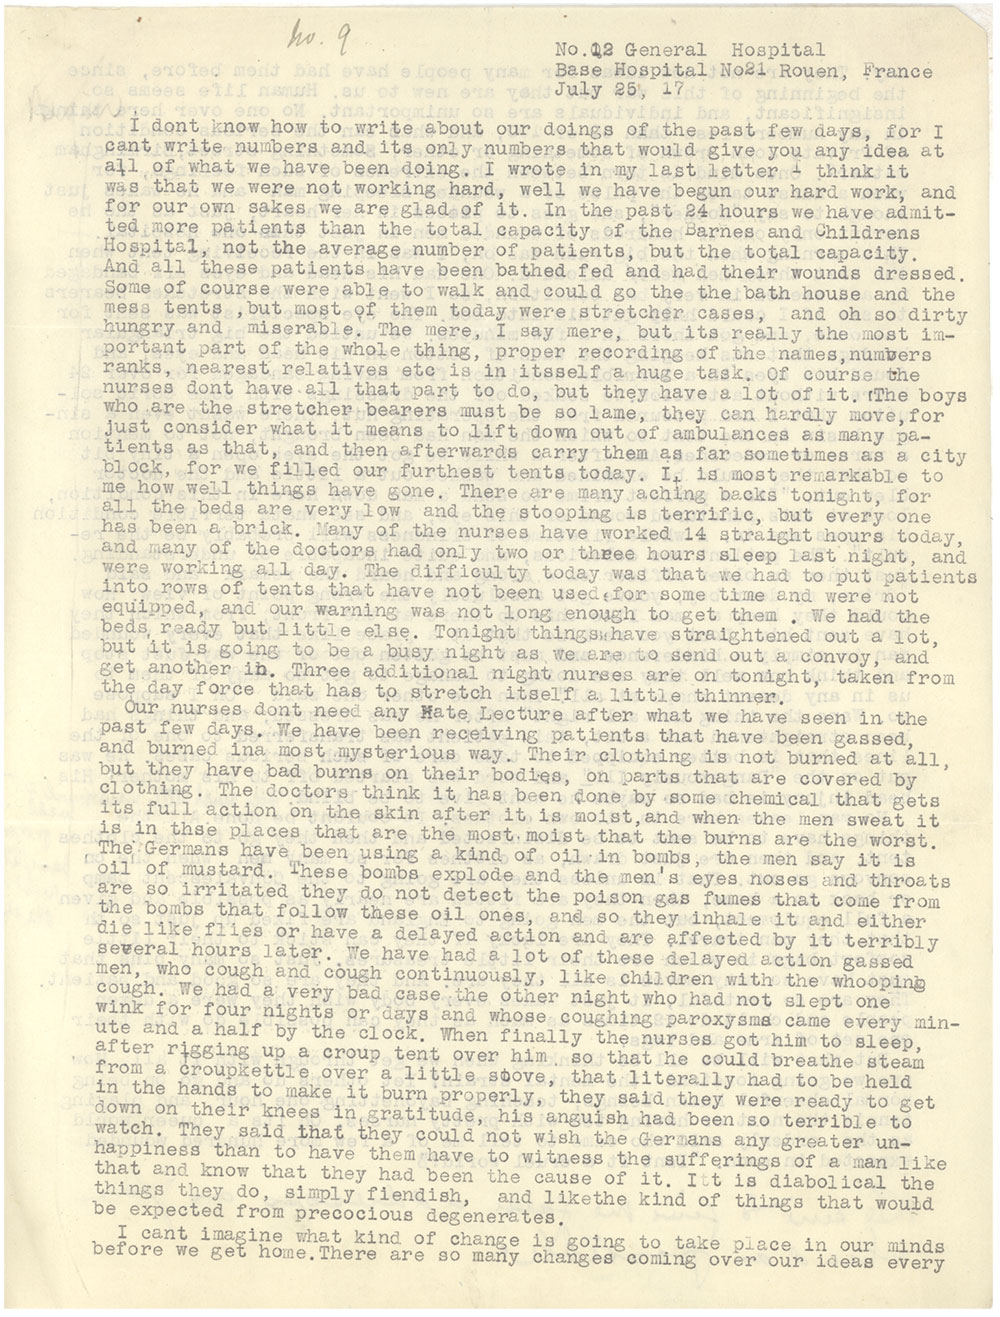 one page of a typed letter